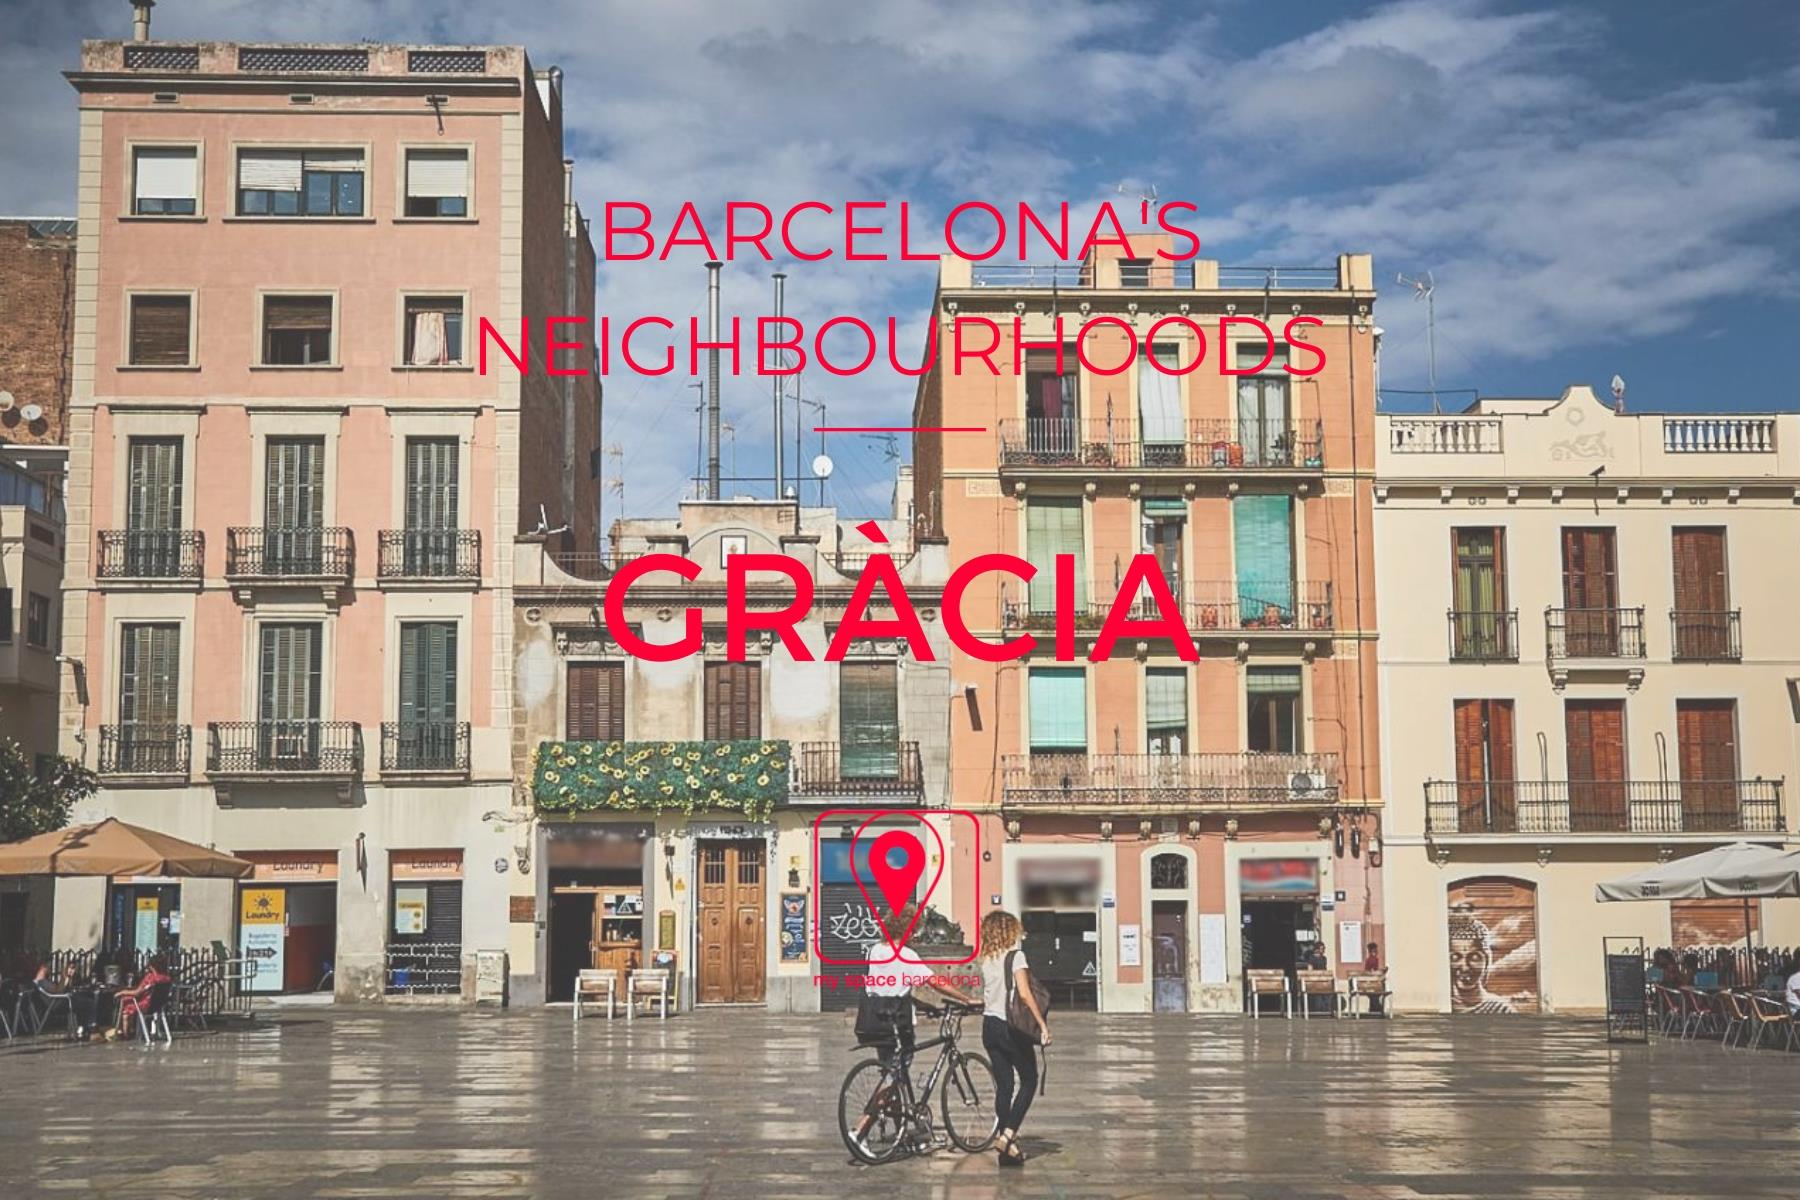 Gràcia Neighborhood